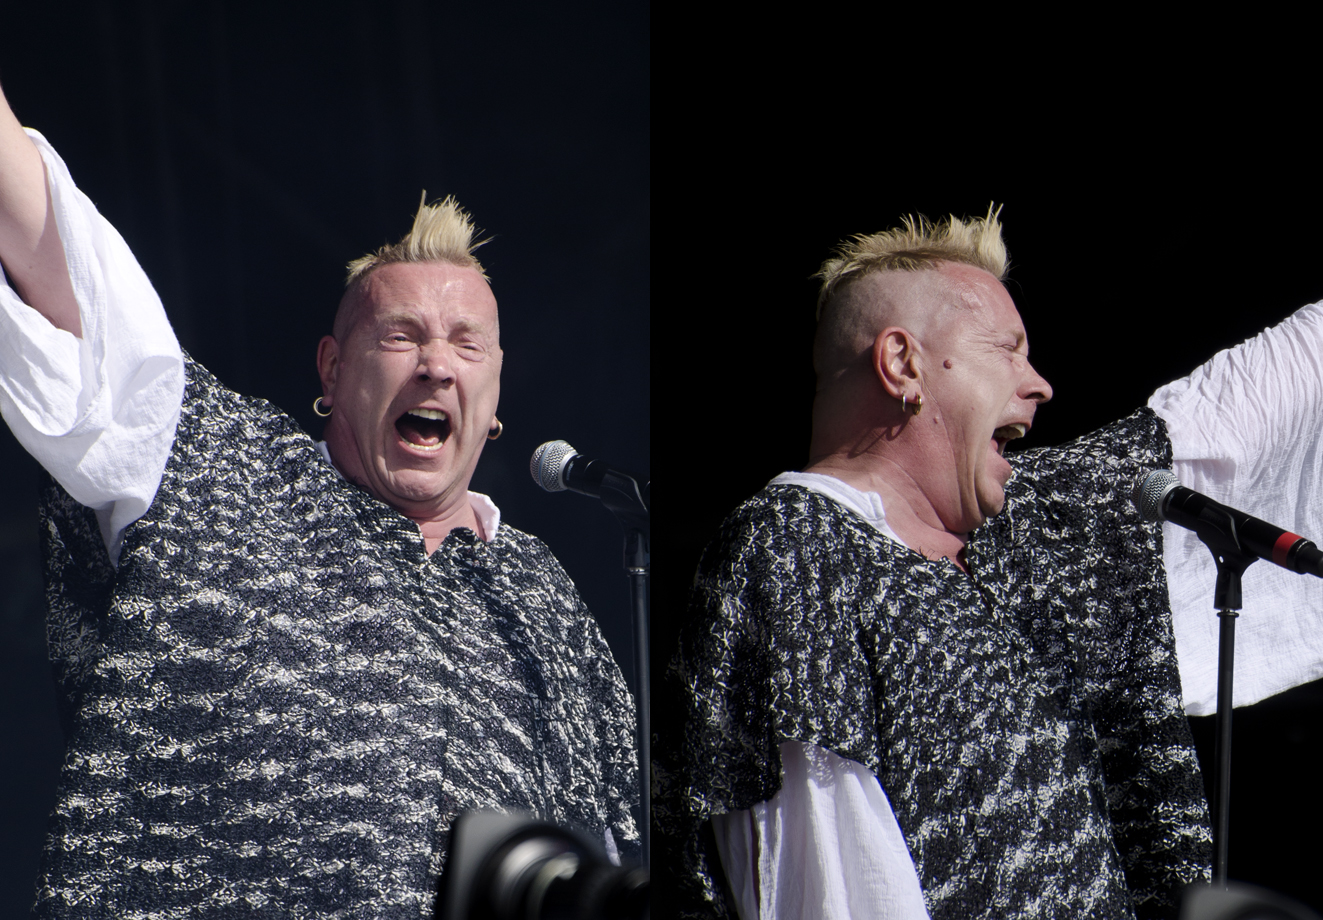 lydon_dyptych